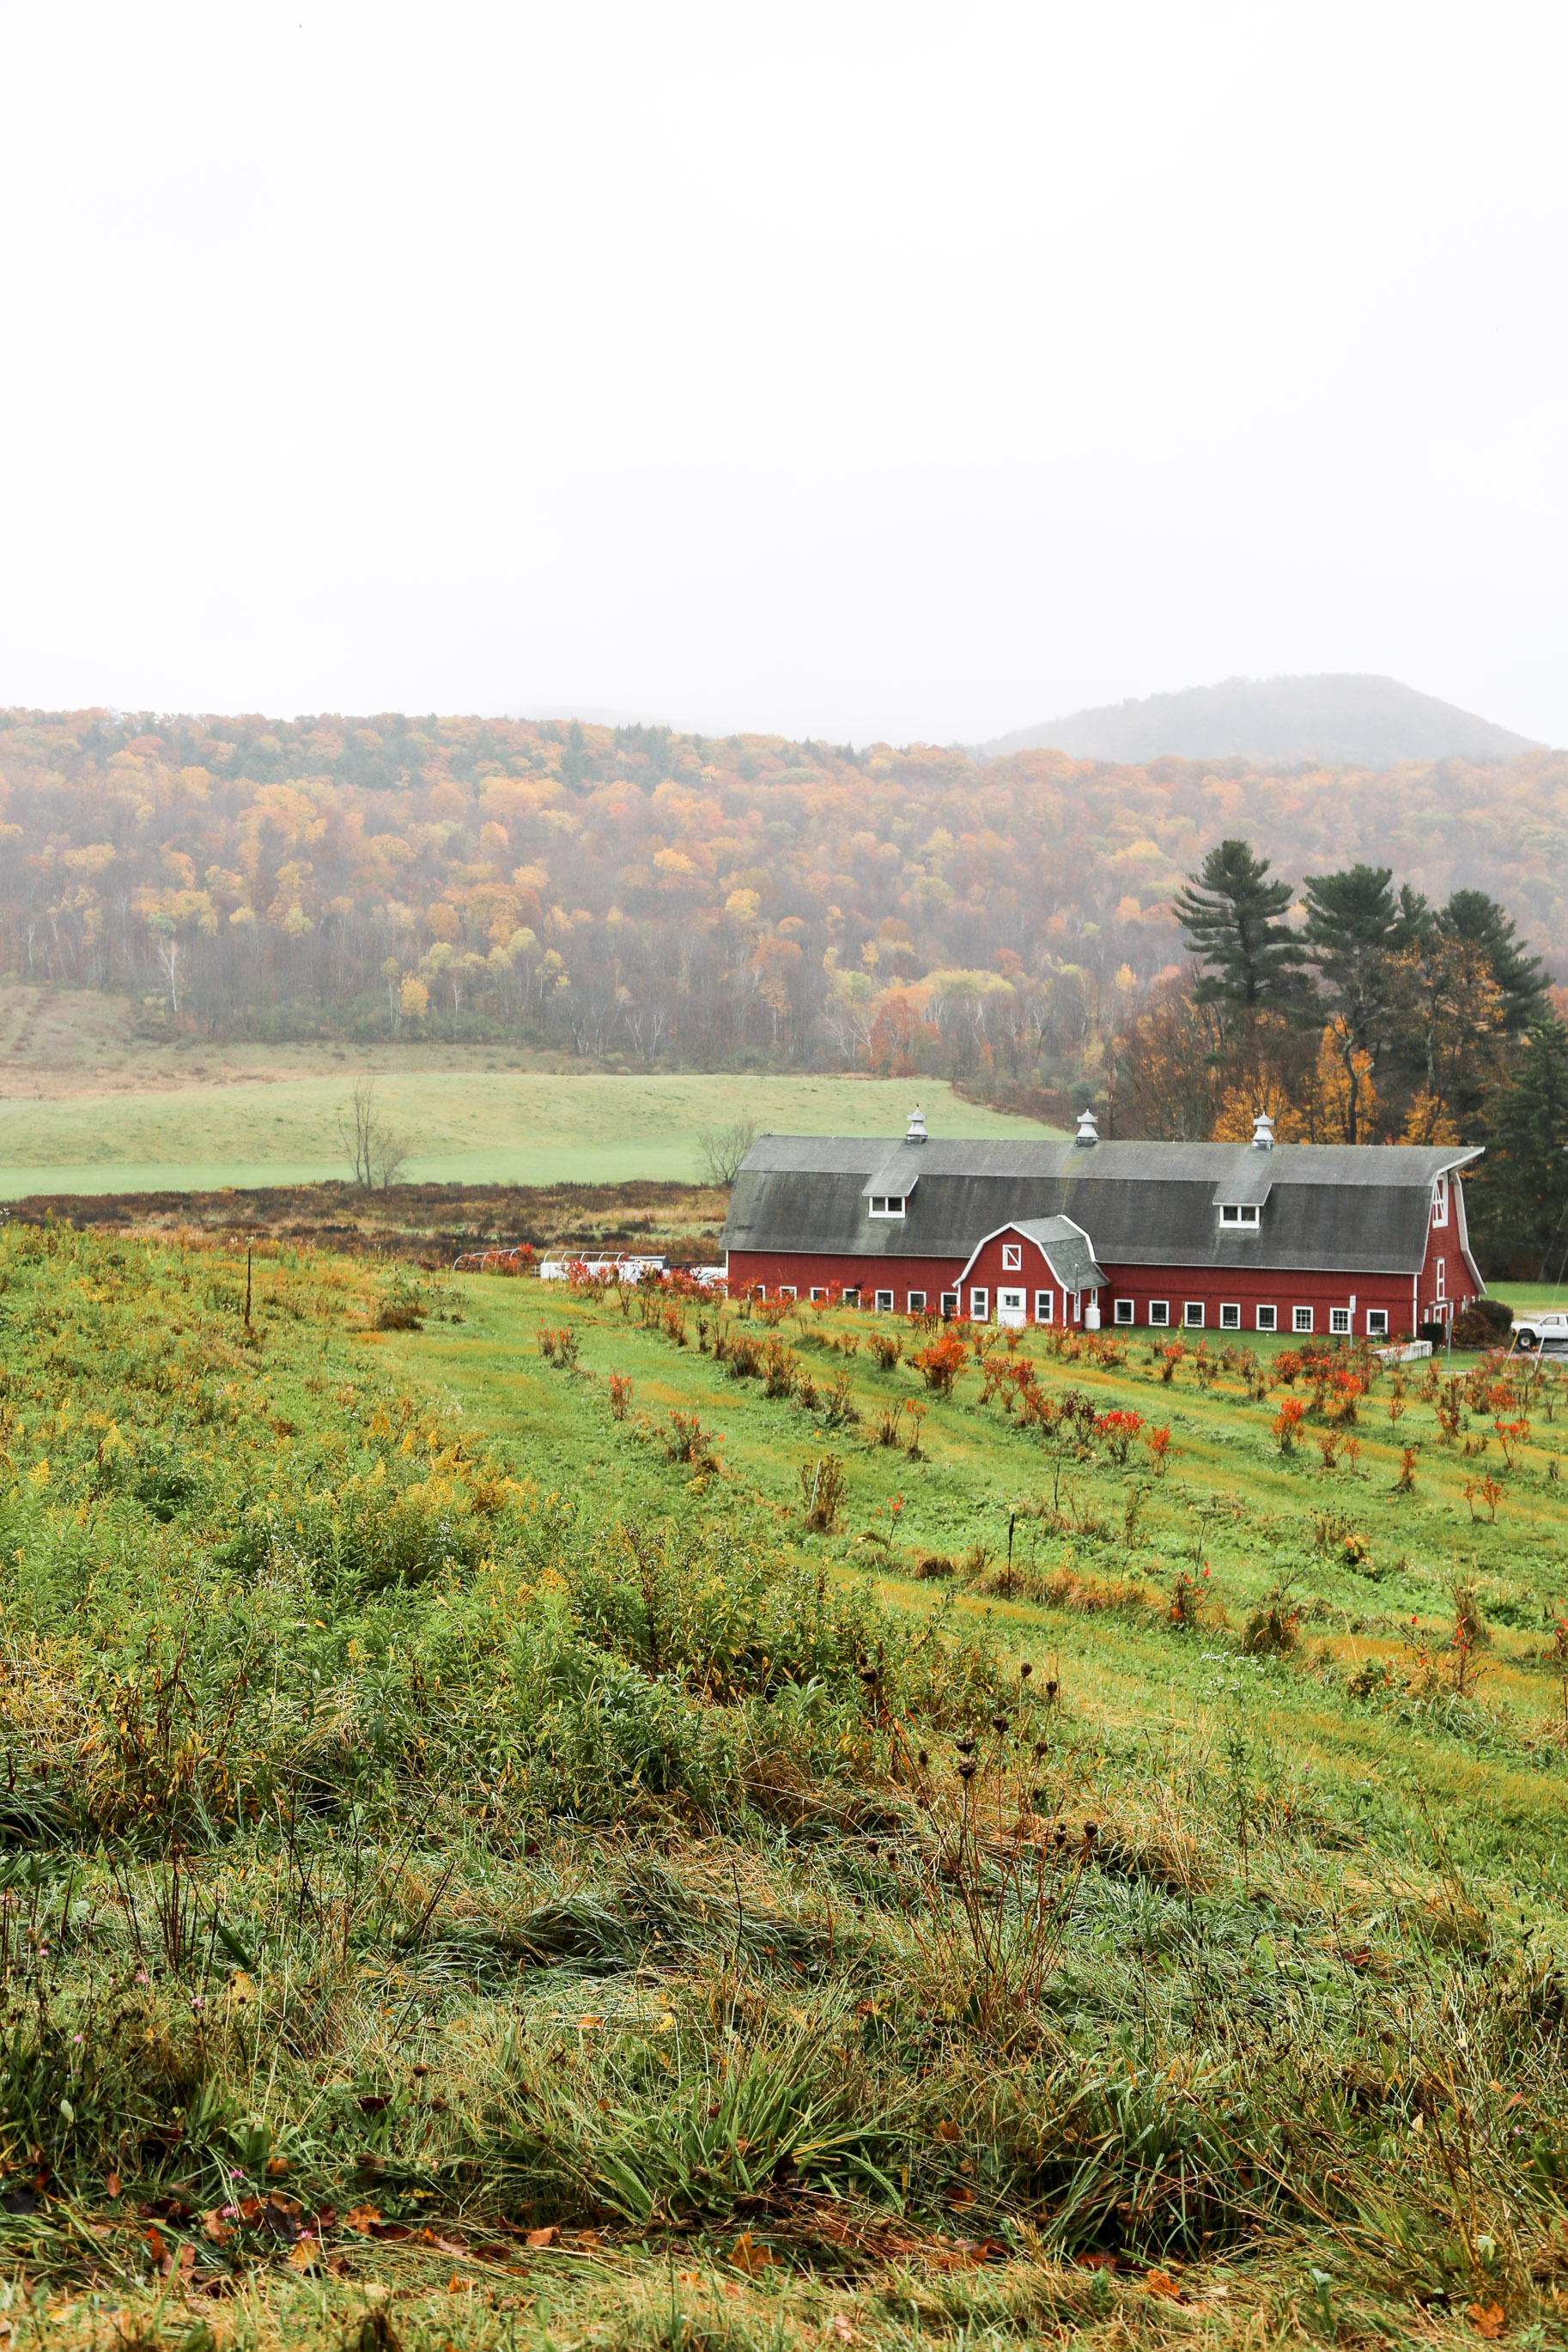 New-England-in-the-fall.jpg